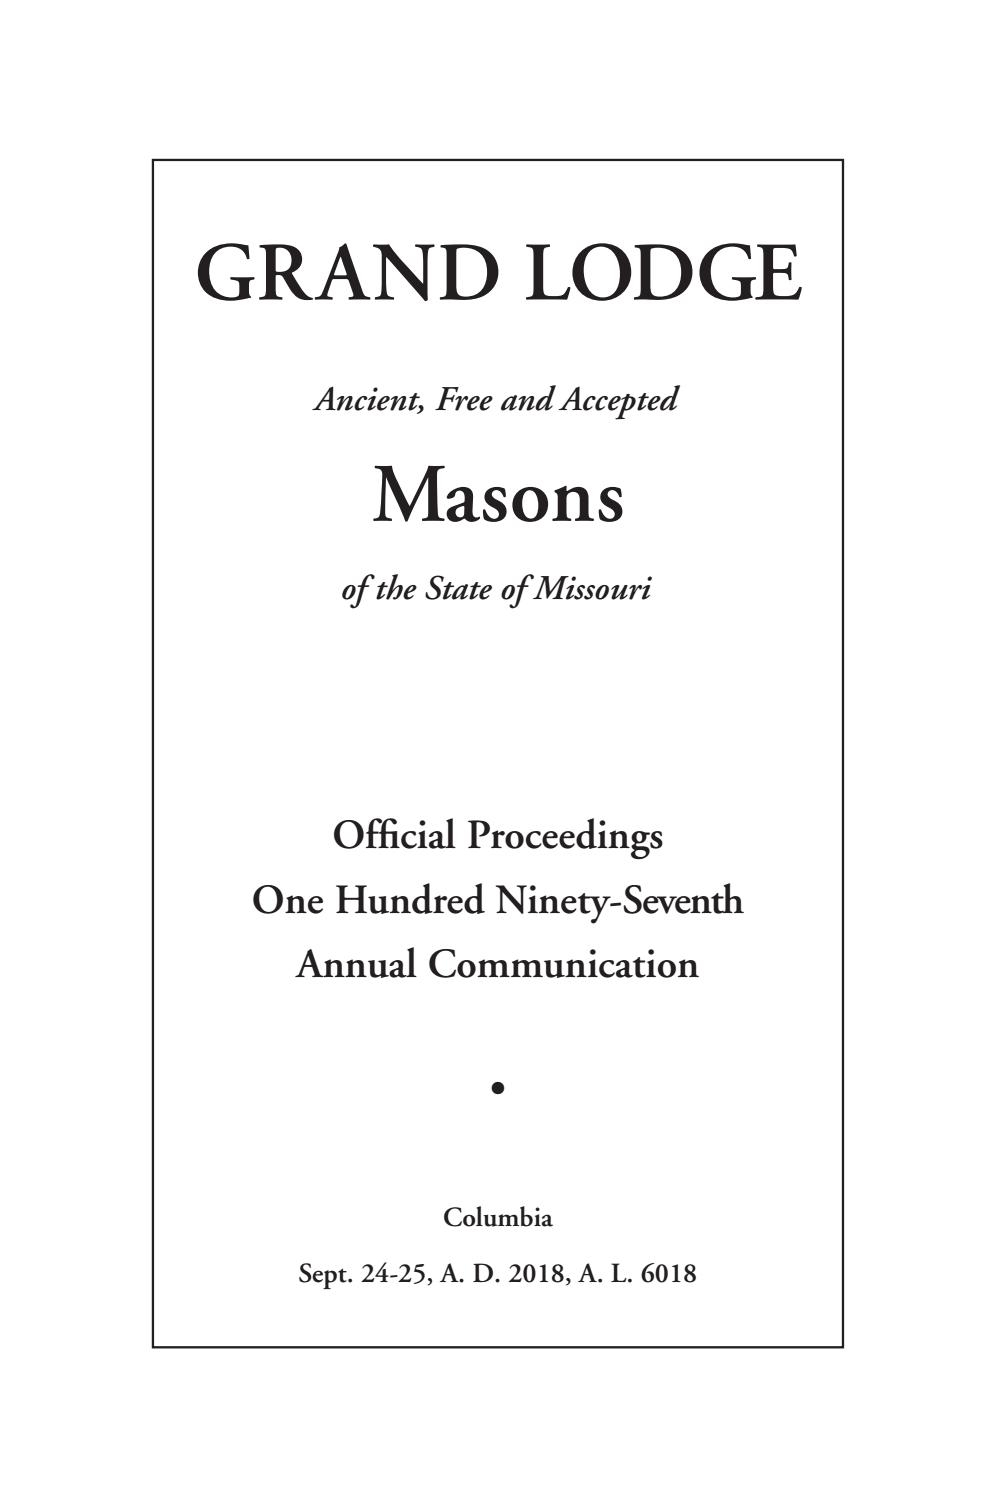 Official Proceedings - Grand Lodge Mo Annual Communication Intended For Billings School District 2 2021 20 Calendar